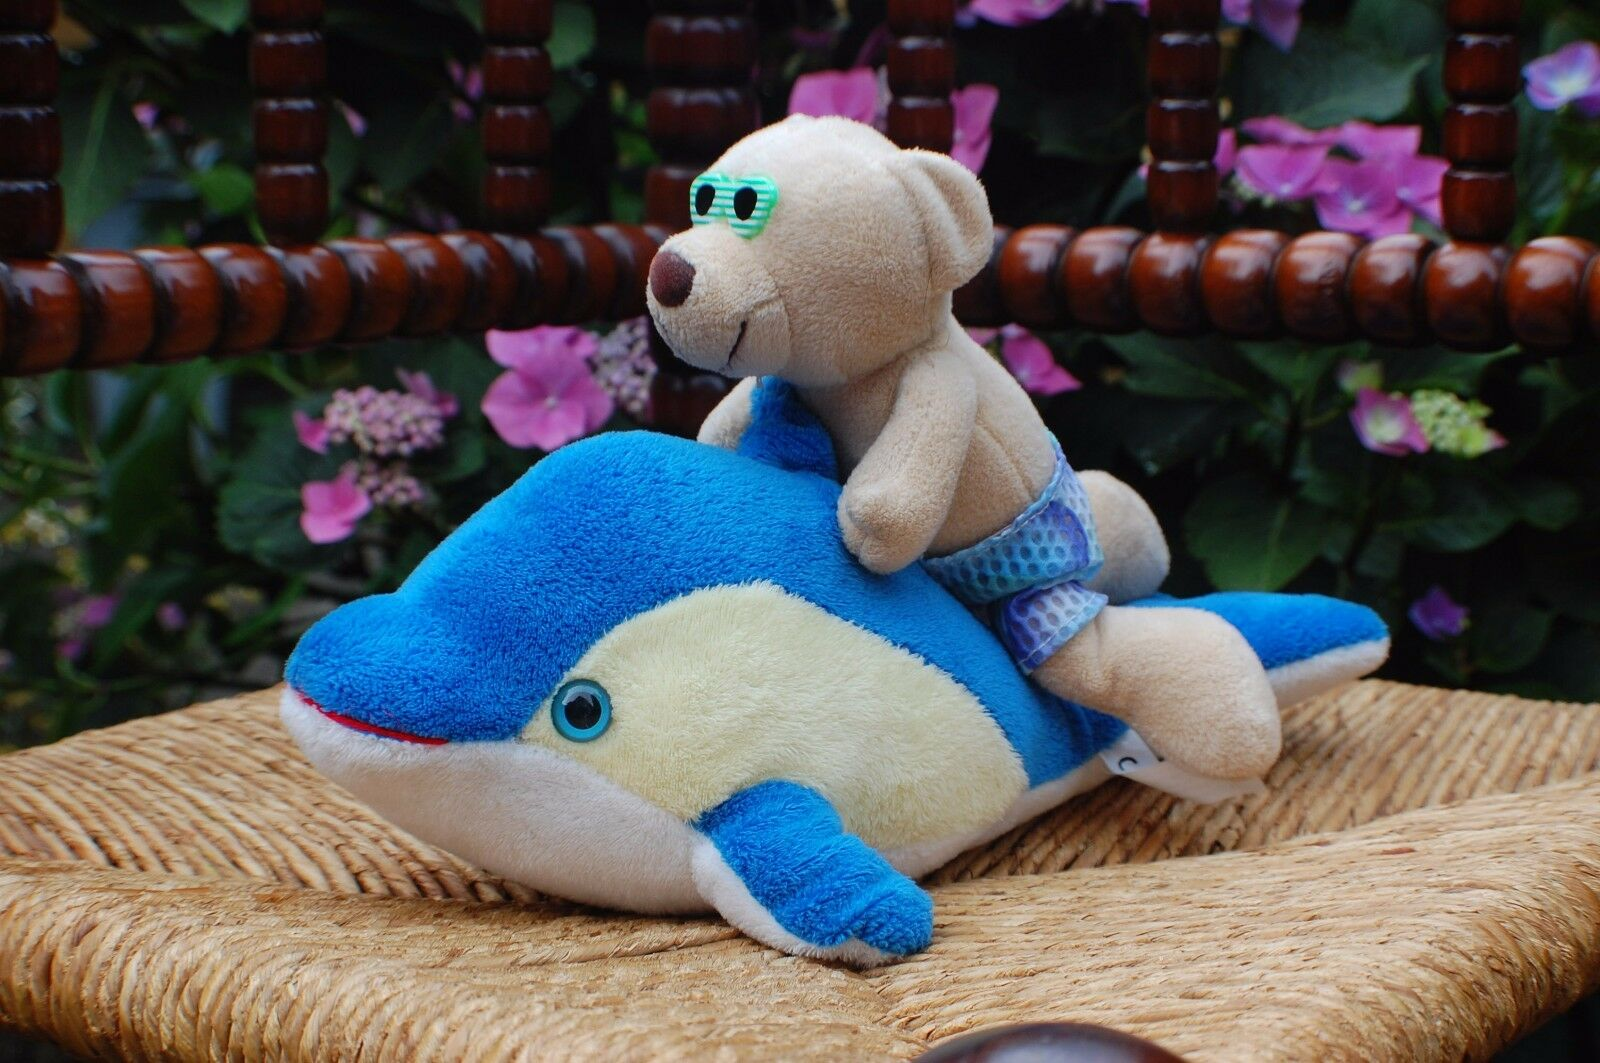 Trend Toys Apeldoorn Netherlands Netherlands Netherlands Plush Bear Riding a Dolphin 11 inch 3dce57